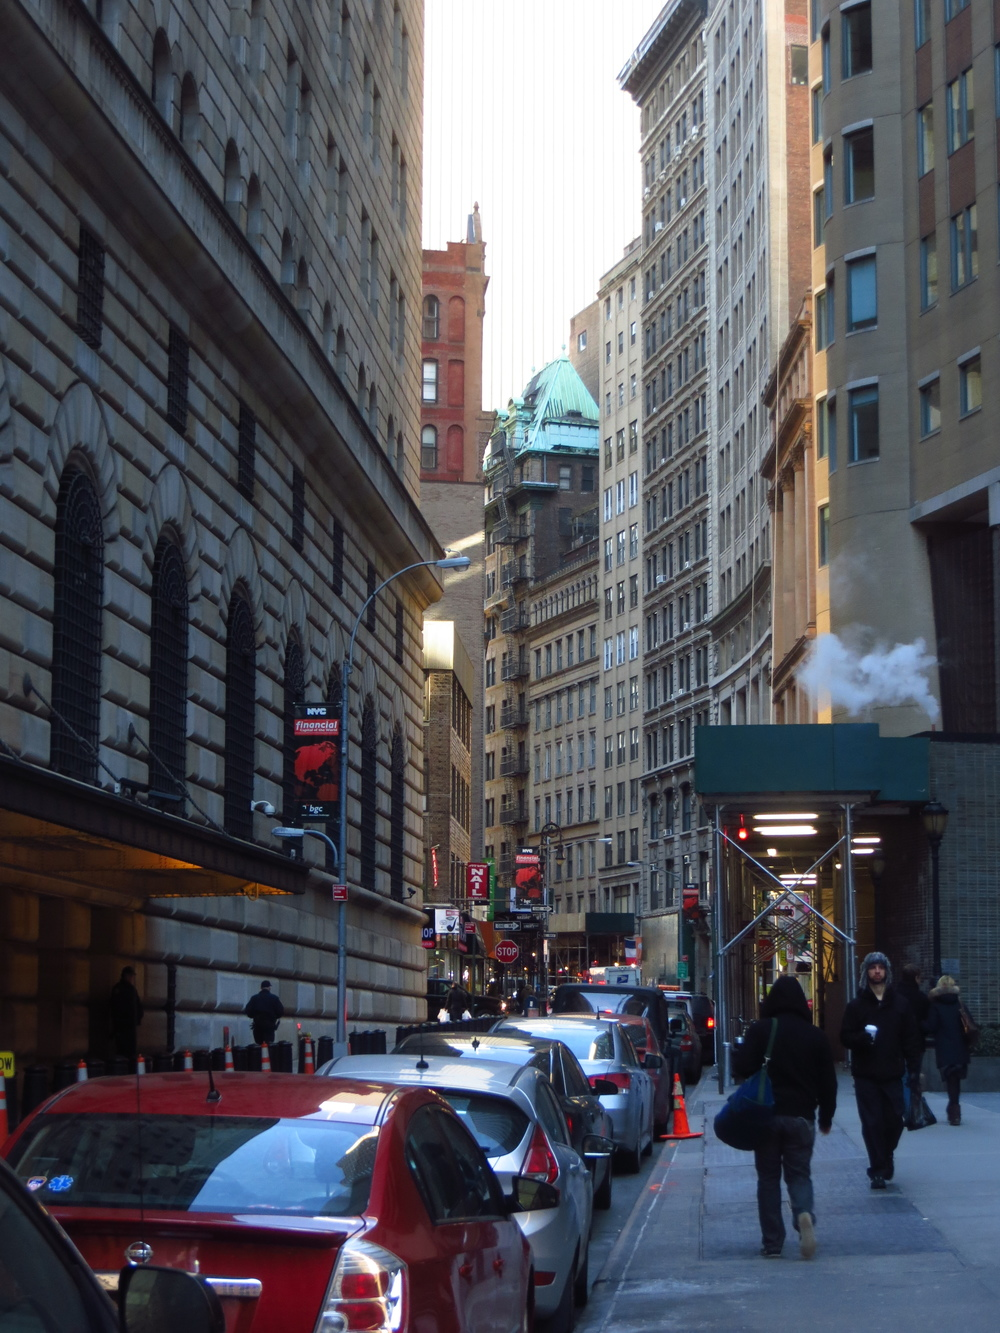 Typical narrow street in lower Manhattan